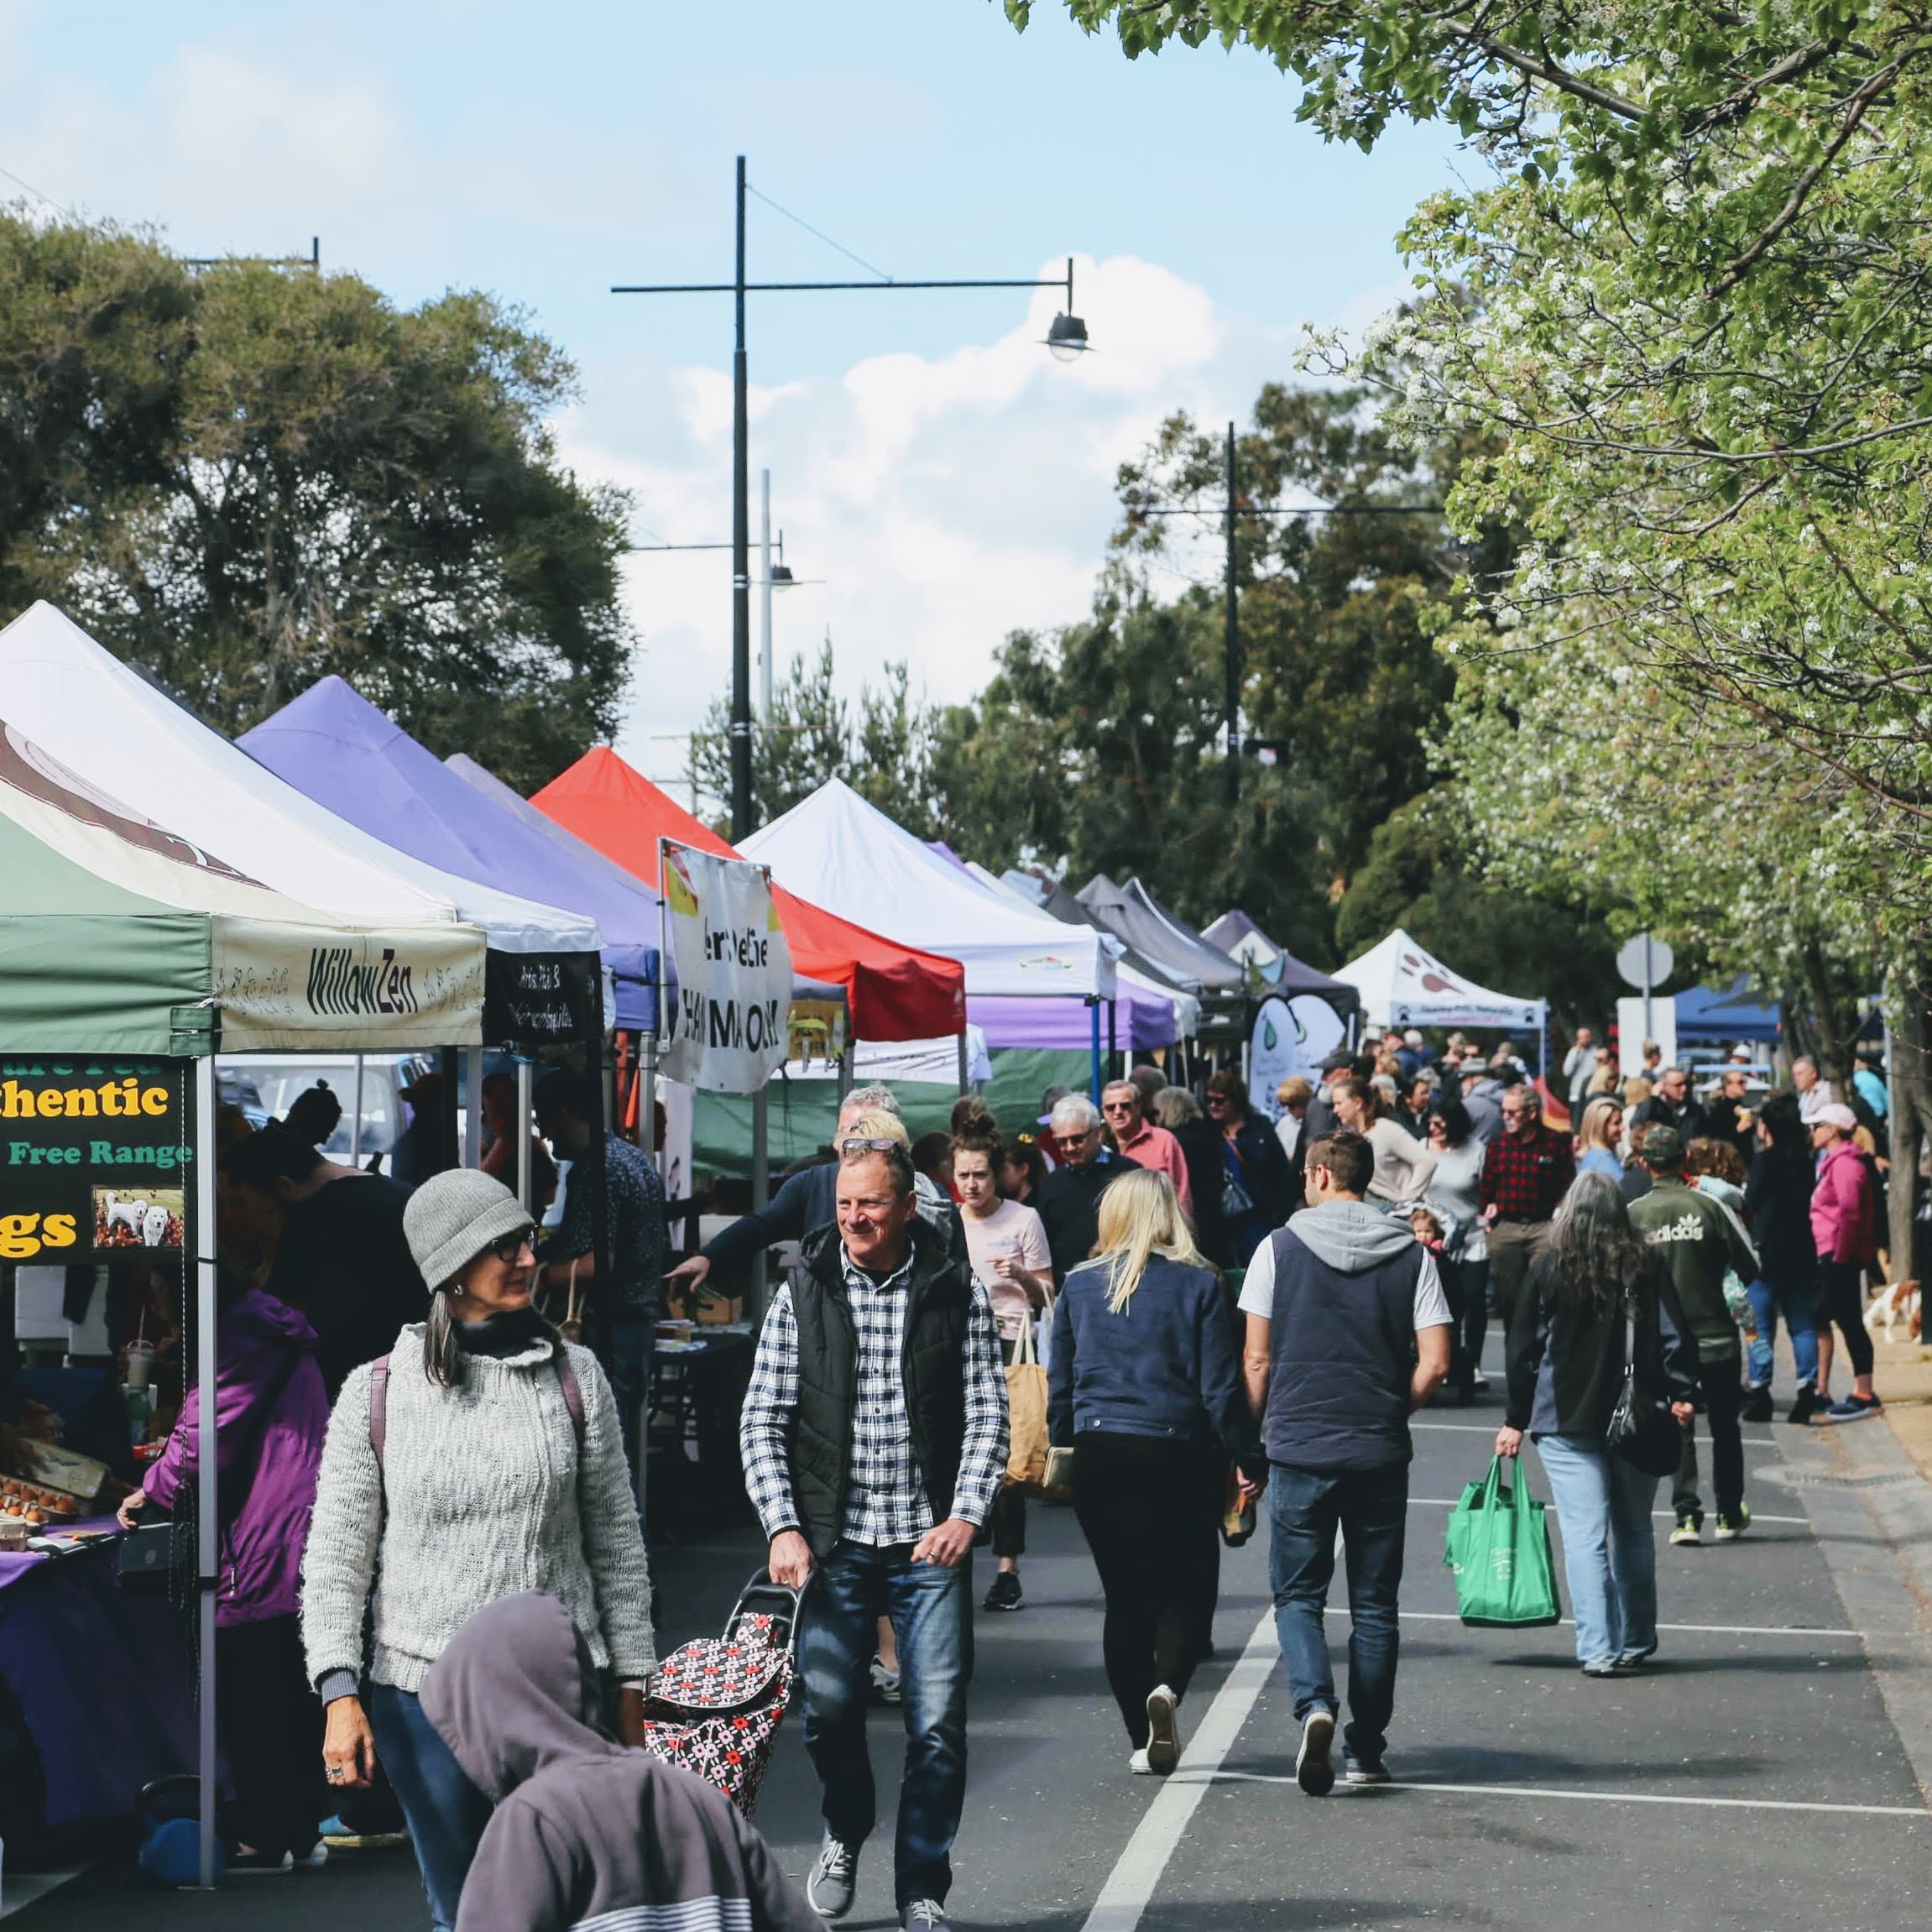 Farmers market makes a welcome return